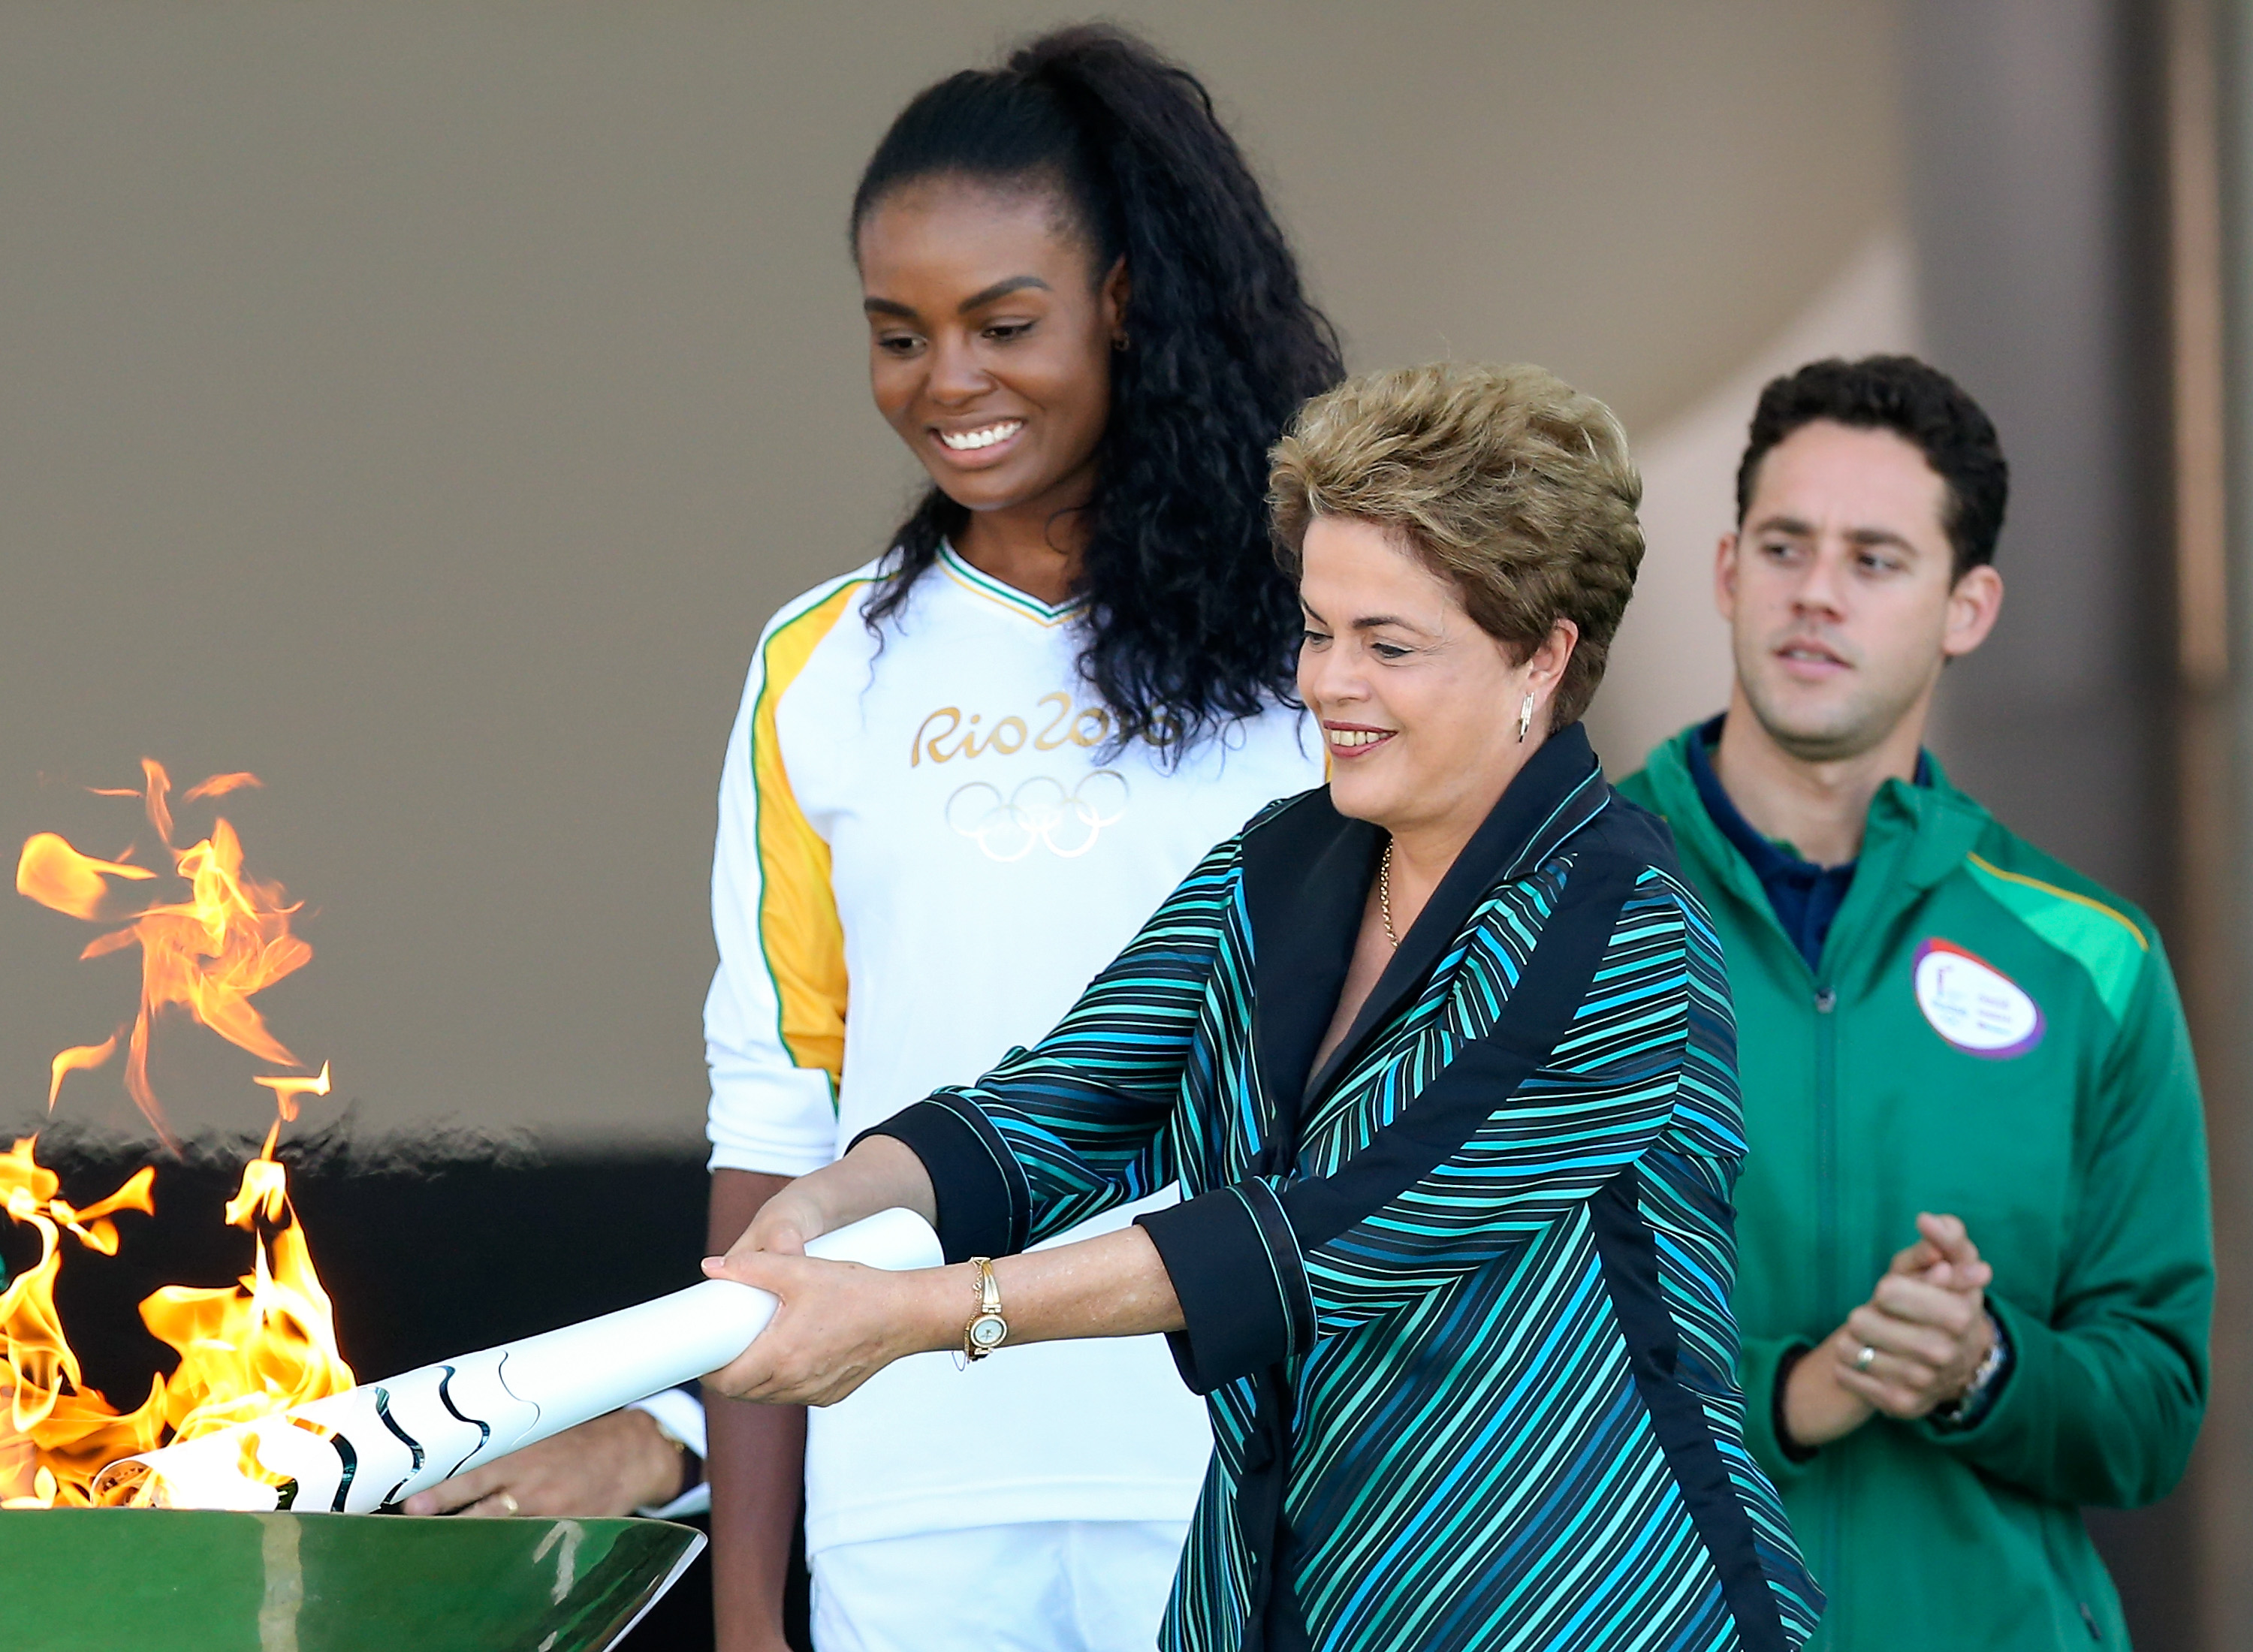 Dilma Rousseff, President of Brazil, lights the Olympic torch with the first torch bearer, volleyball player Fabiana Claudino at the Palacio do Planalto on May 3, 2016 in Brasilia, Brazil.